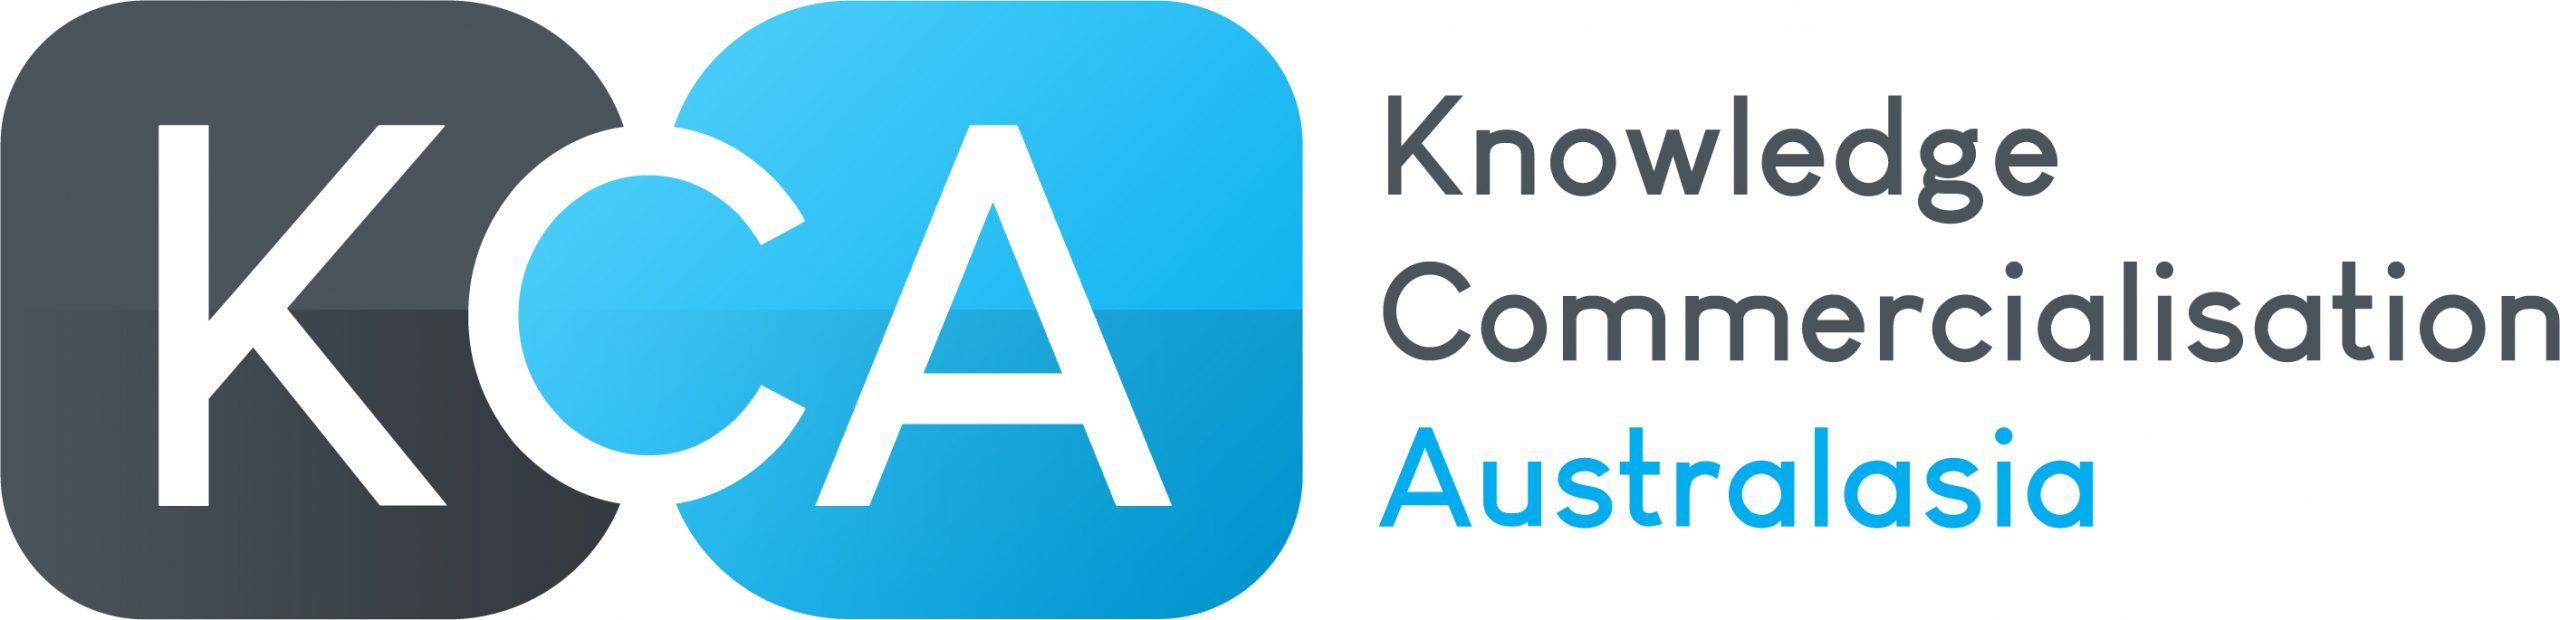 Knowledge Commercialisation Australasia